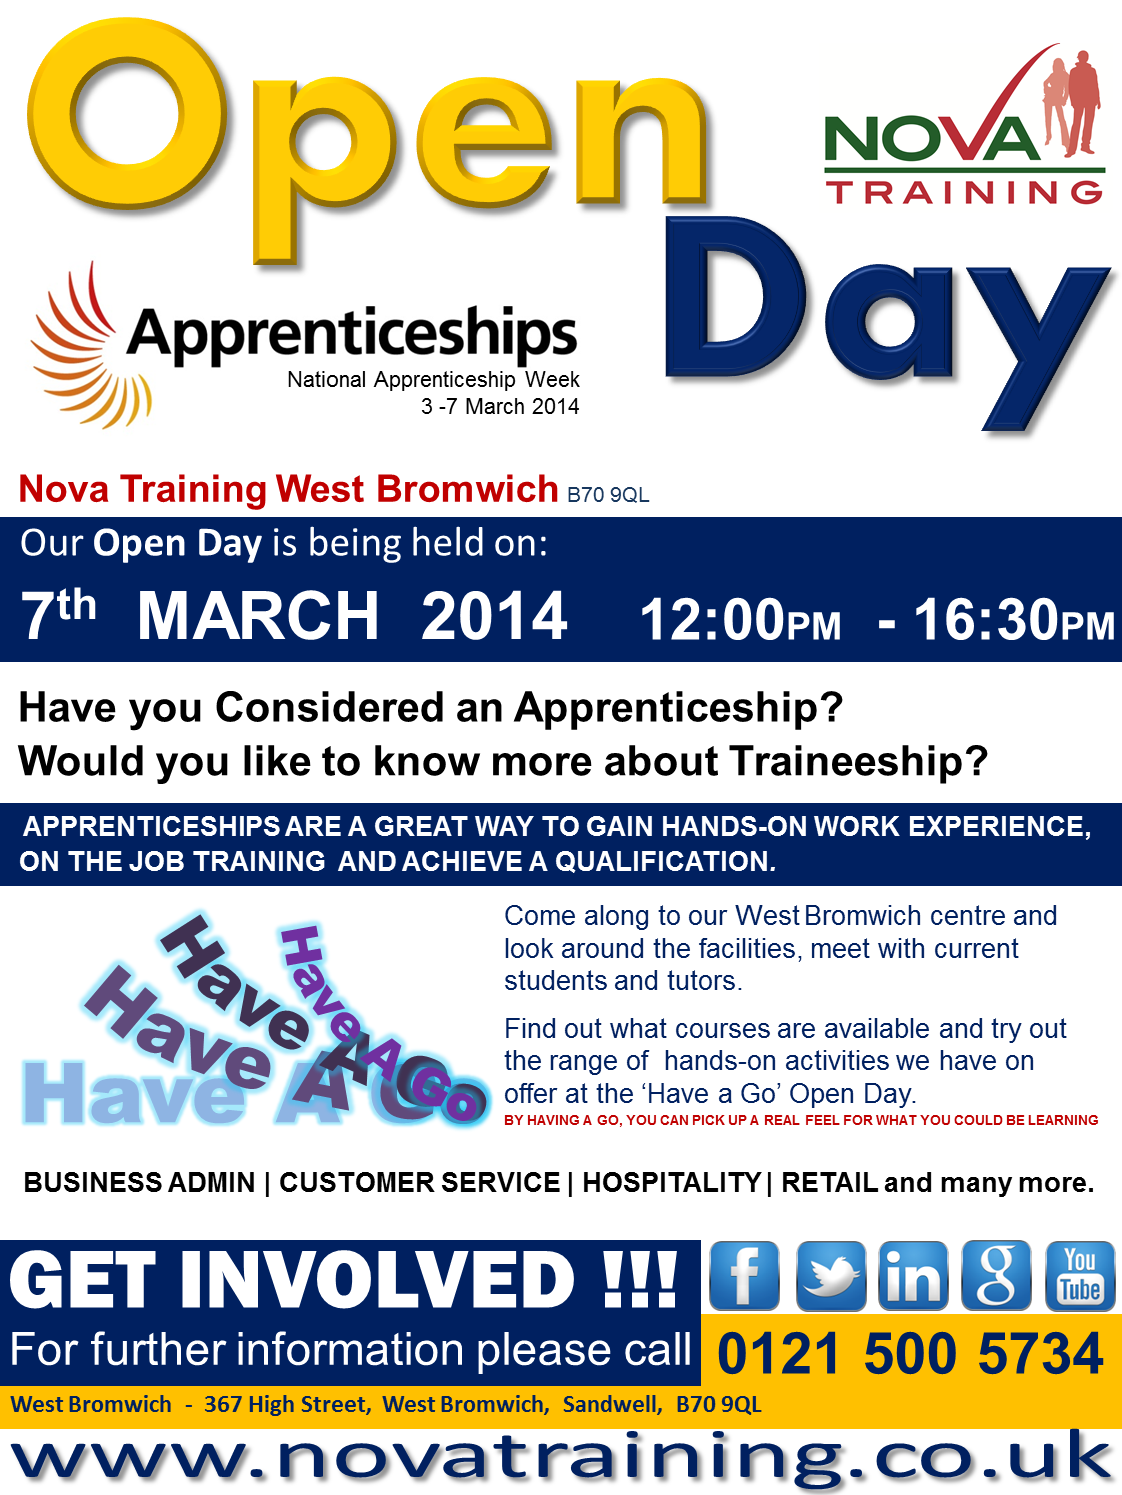 WEST BROMWICH APPRENTICESHIP WEEK 2014